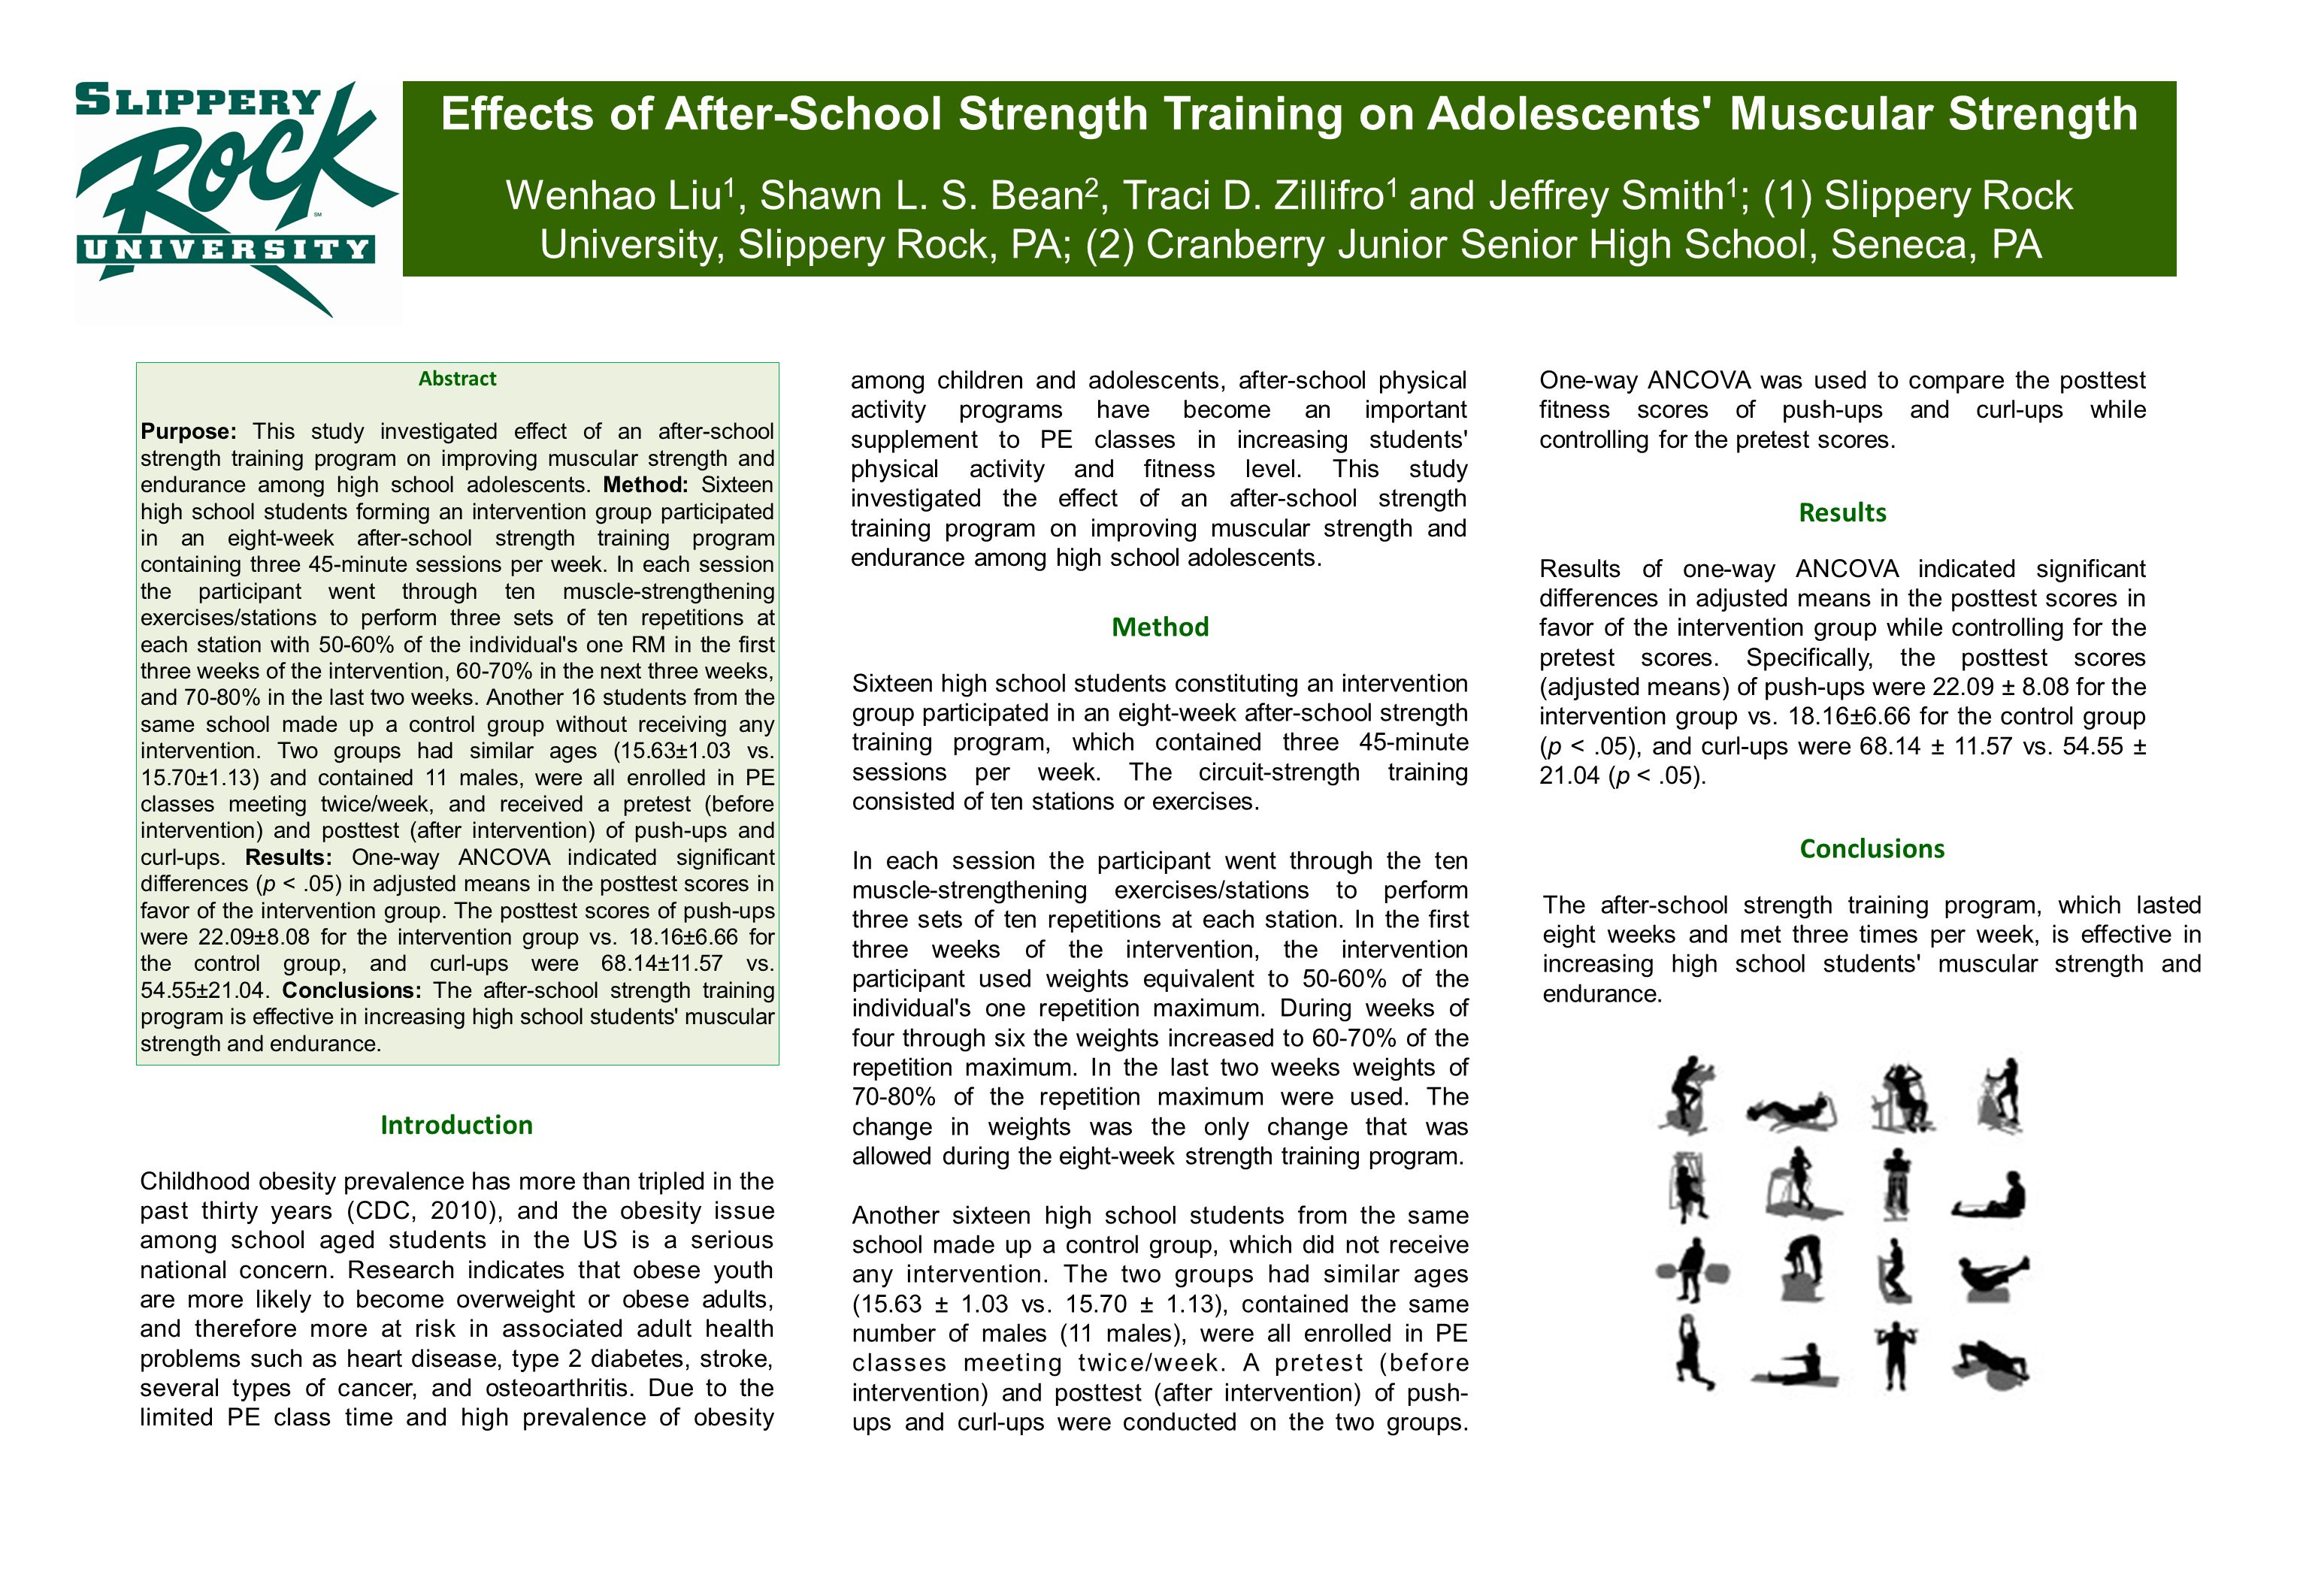 Effects of After-School Strength Training on Adolescents' Muscular Strength Wenhao Liu 1, Shawn L. S. Bean 2, Traci D. Zillifro 1 and Jeffrey Smith 1